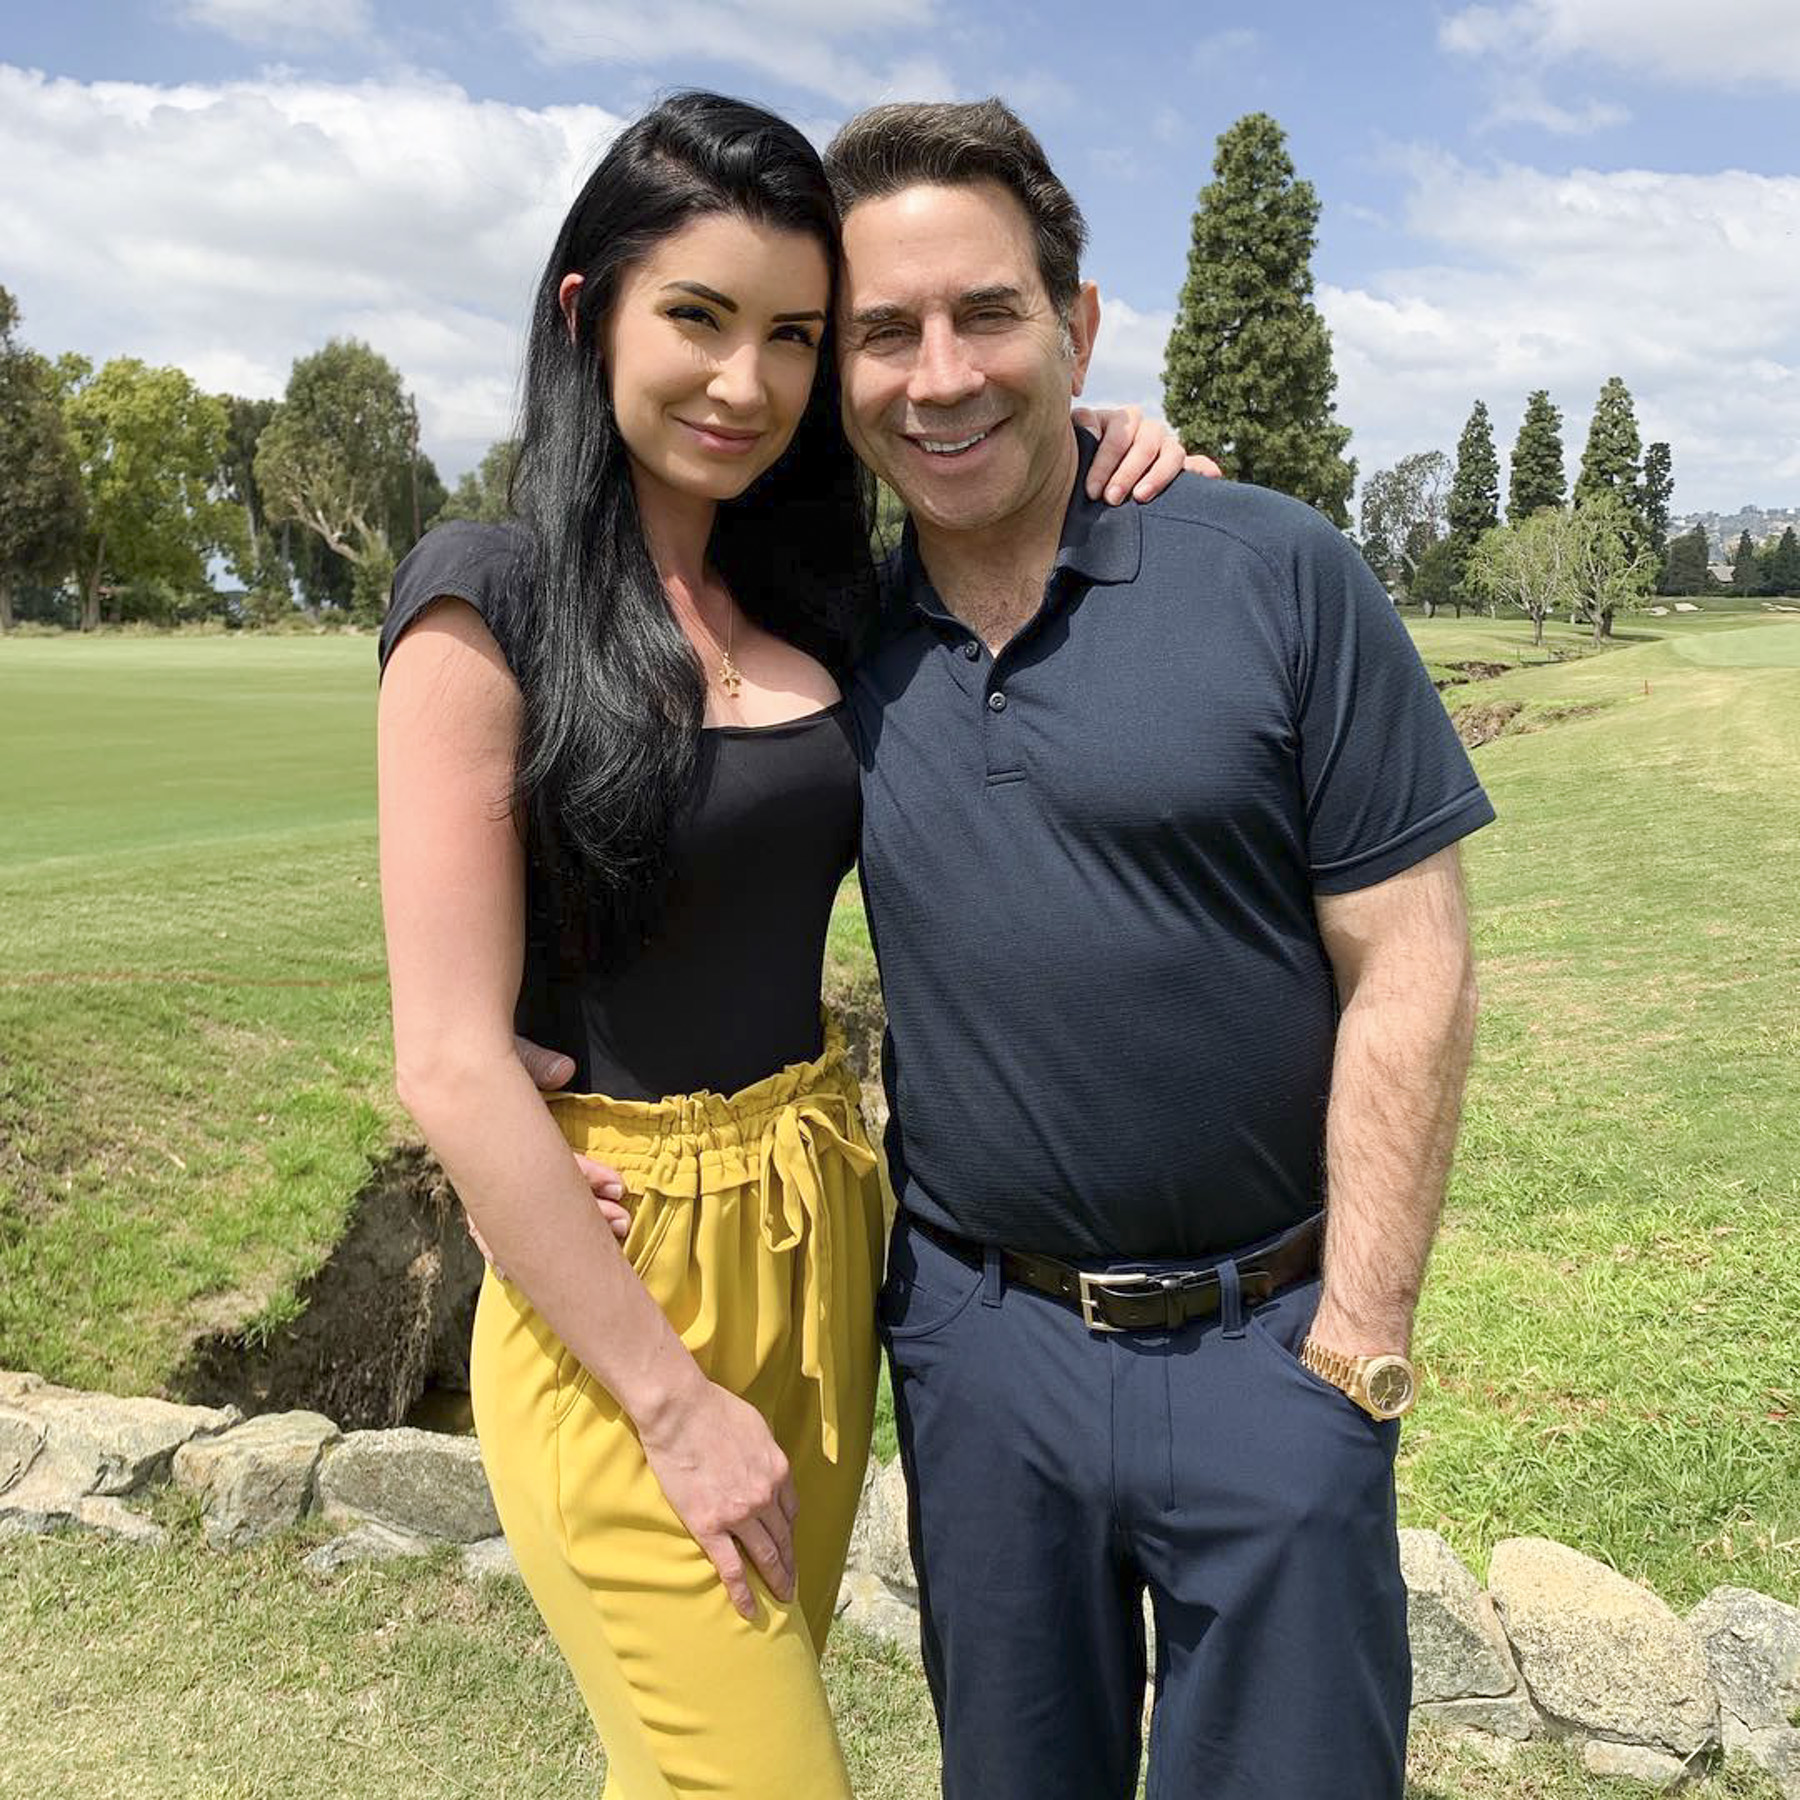 RHOBH Alum Adrienne Maloof's Ex Dr. Paul Nassif Is Engaged